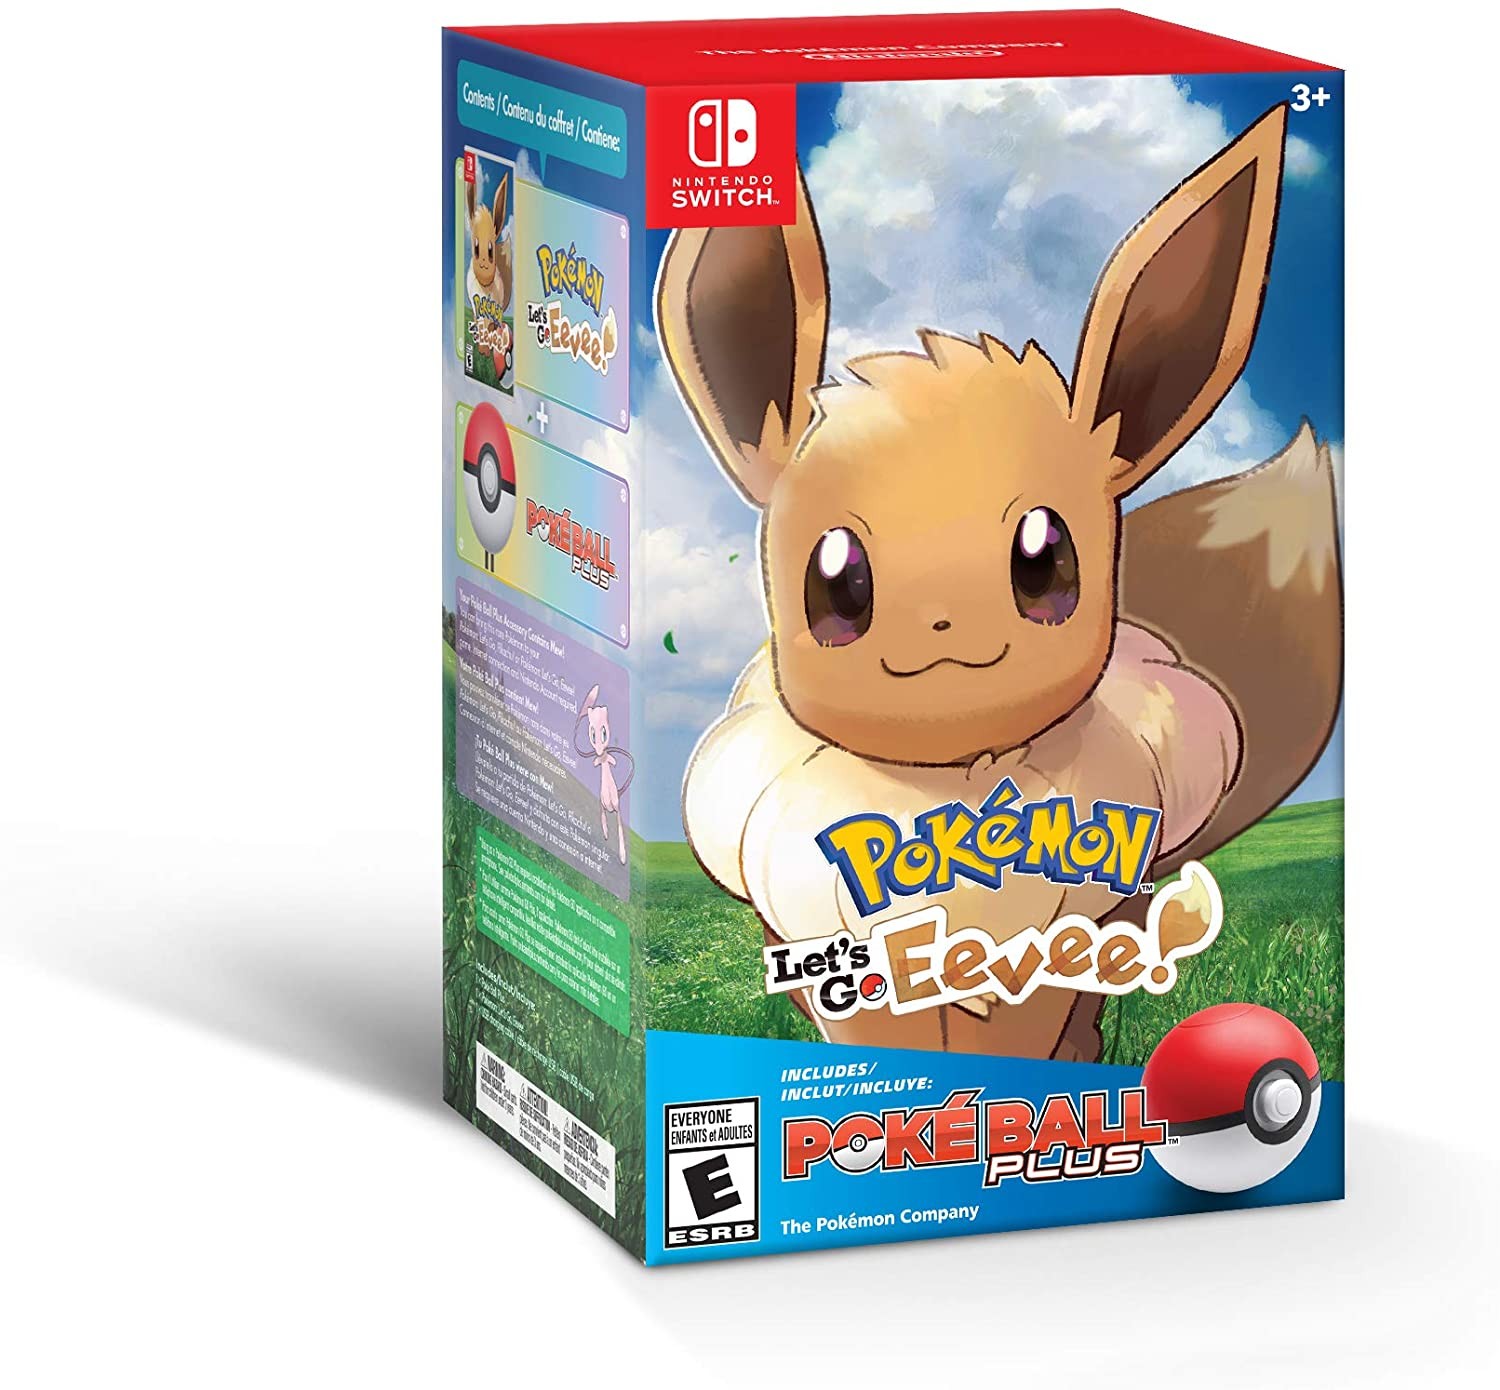 Pokemon: Let's Go Eevee! Bundle+ (Nintendo Switch) | SKYFOX GAMES